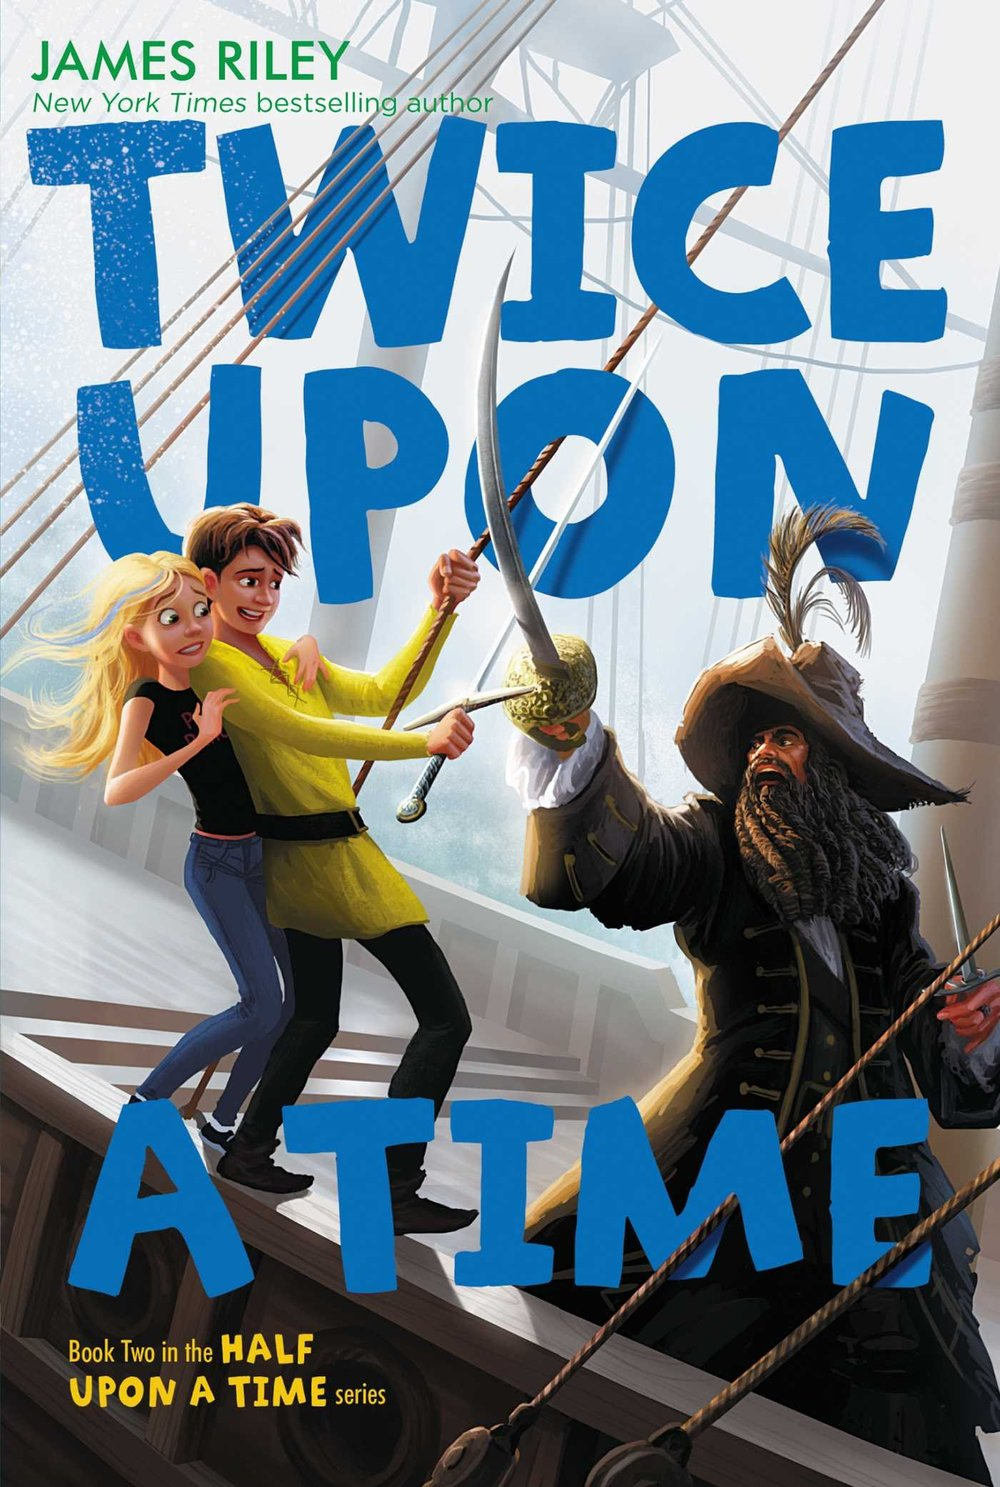 TWICE UPON A TIME (BOOK 2) - Jack and May are back for another adventure in the world of fairy tales with a twist. Now that they know about May's grandmother's real intentions, they're on the hunt to learn May's true identity. The search for answers leads Jack and May to the world of the Sea King, where they land right in the center of a battle between mermaids and the Pirate Bluebeard. The laughter and action are nonstop in this book from author James Riley—the second in a trilogy!BUY: AMAZON | BARNES & NOBLE | INDEPENDENT STORES